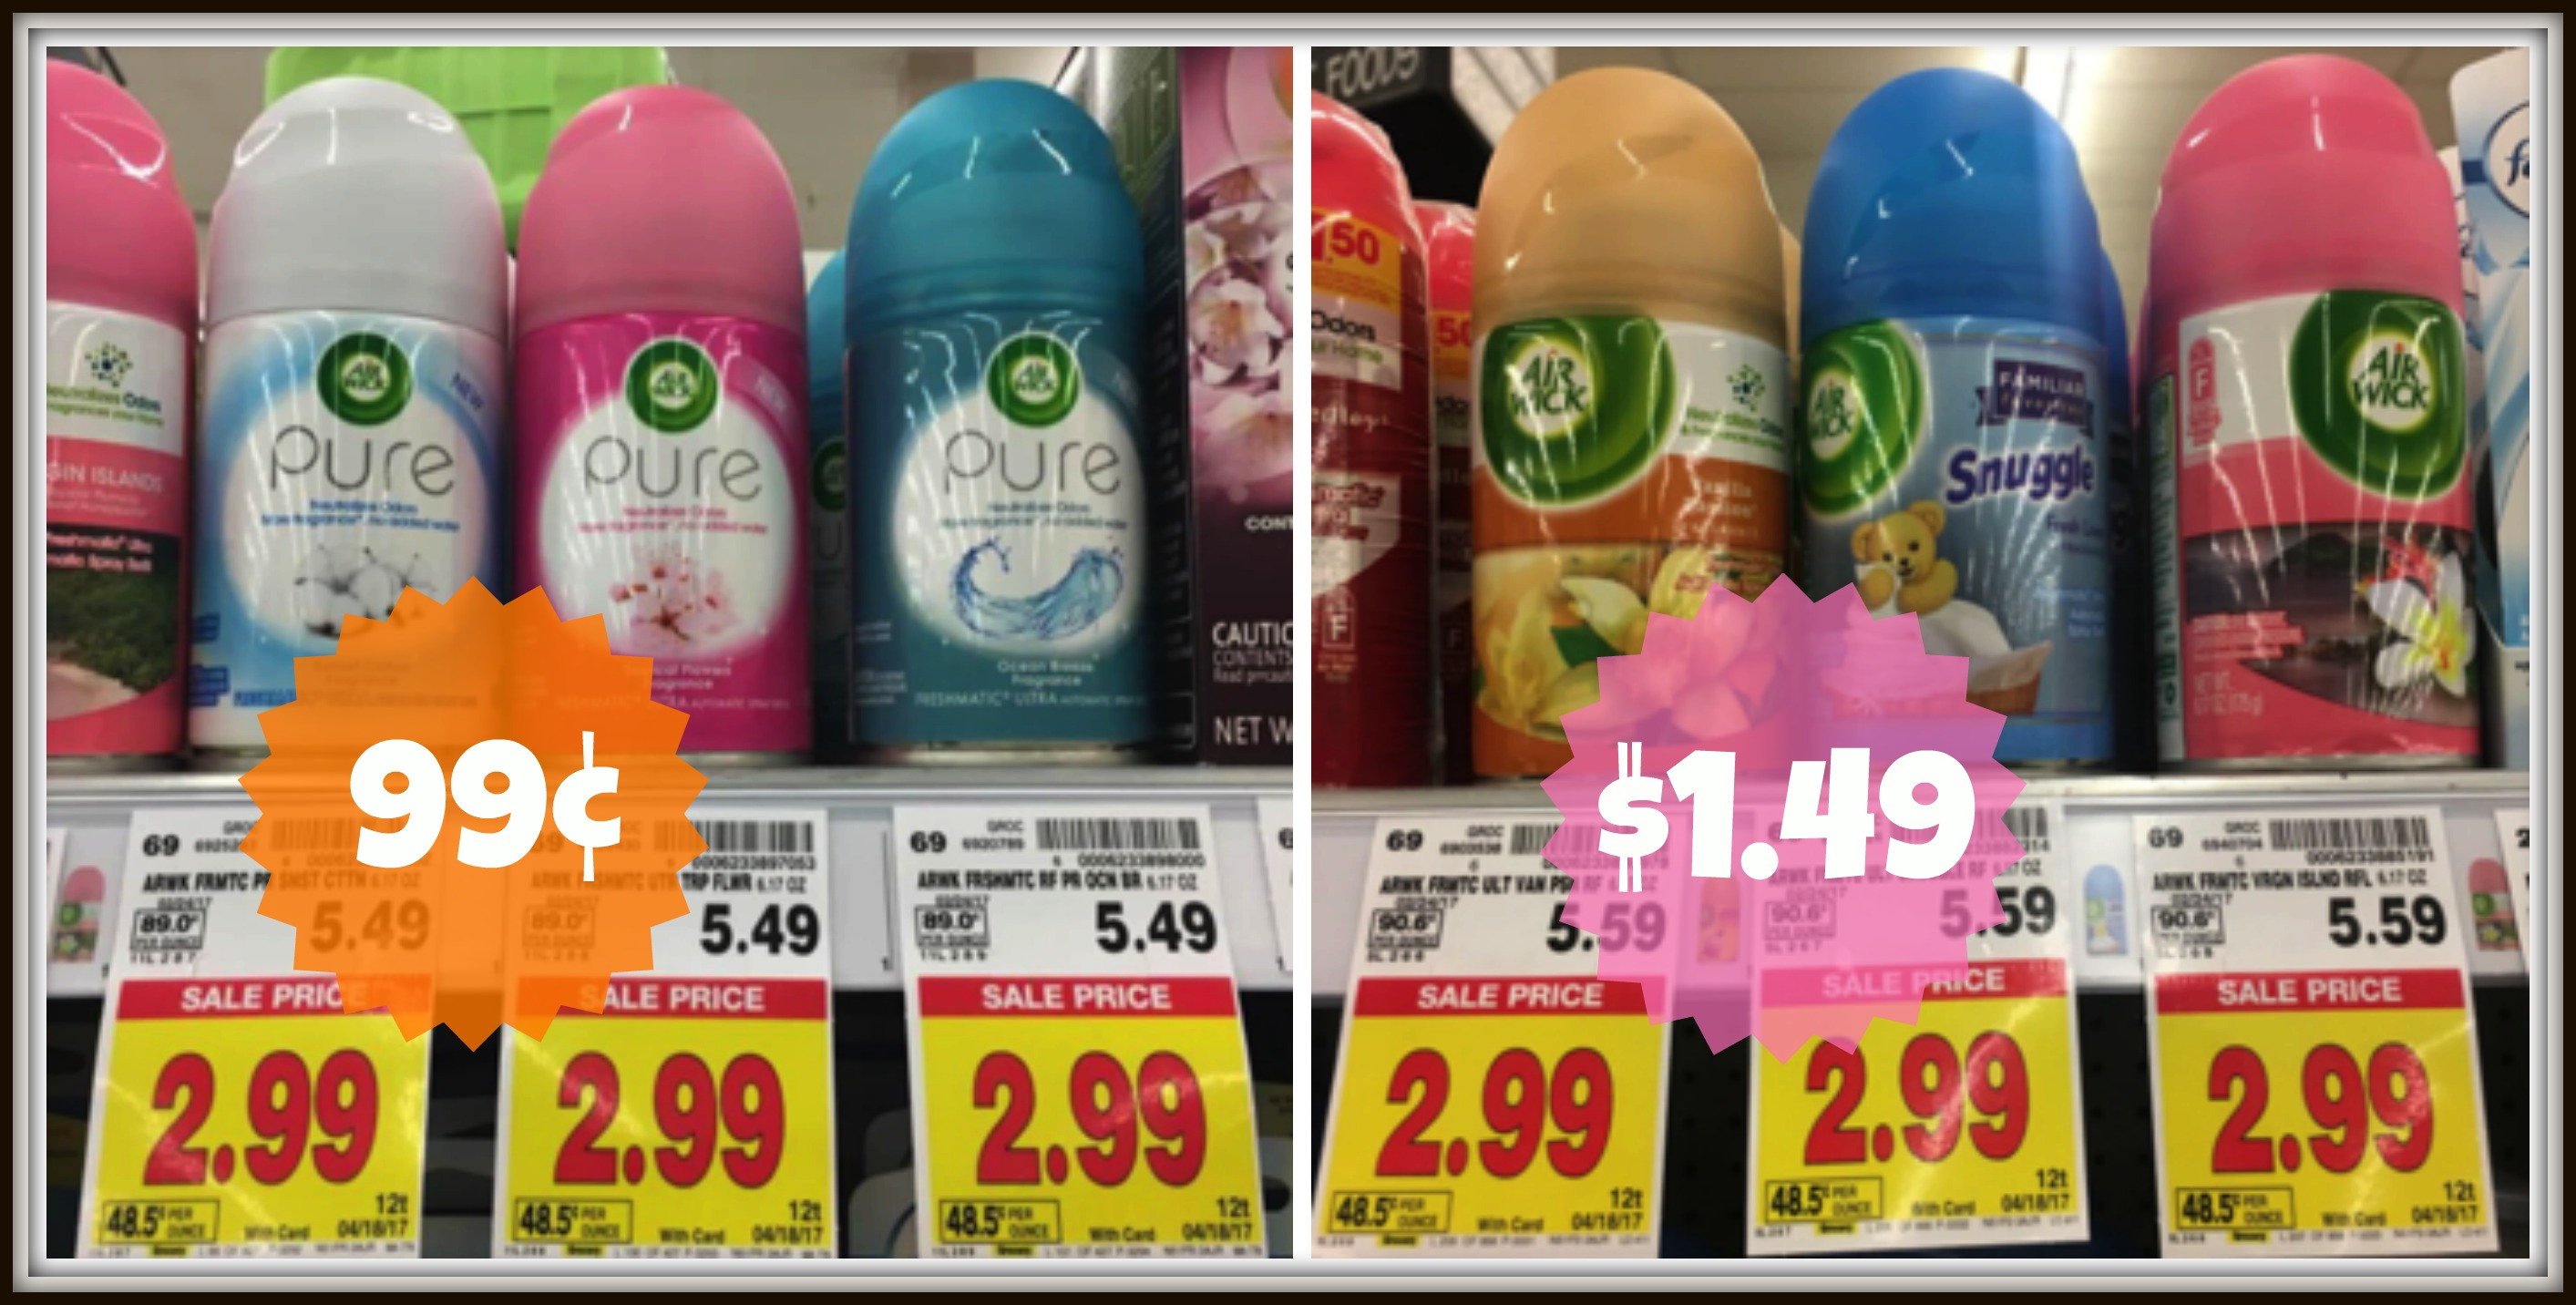 Fabulous Two New Air Wick Coupons Freshmatic Refills As Low As 99 Interior Design Ideas Inesswwsoteloinfo